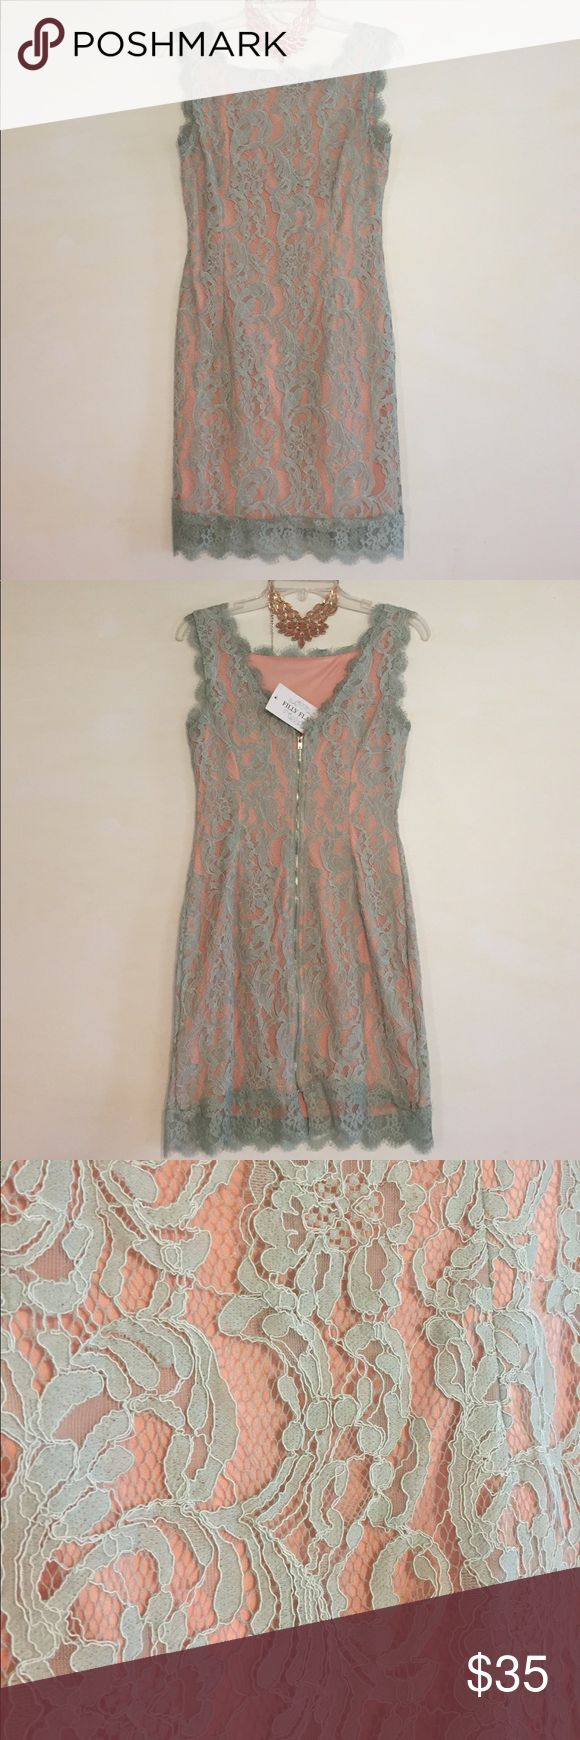 Filly Flair Teal & Salmon Lace Dress, M This charming Filly Flair Teal & Salmon Lace Dress, M is great for wedding season! Brand new, no defects and comes from a smoke/pet free home. Filly Flair Dresses Midi